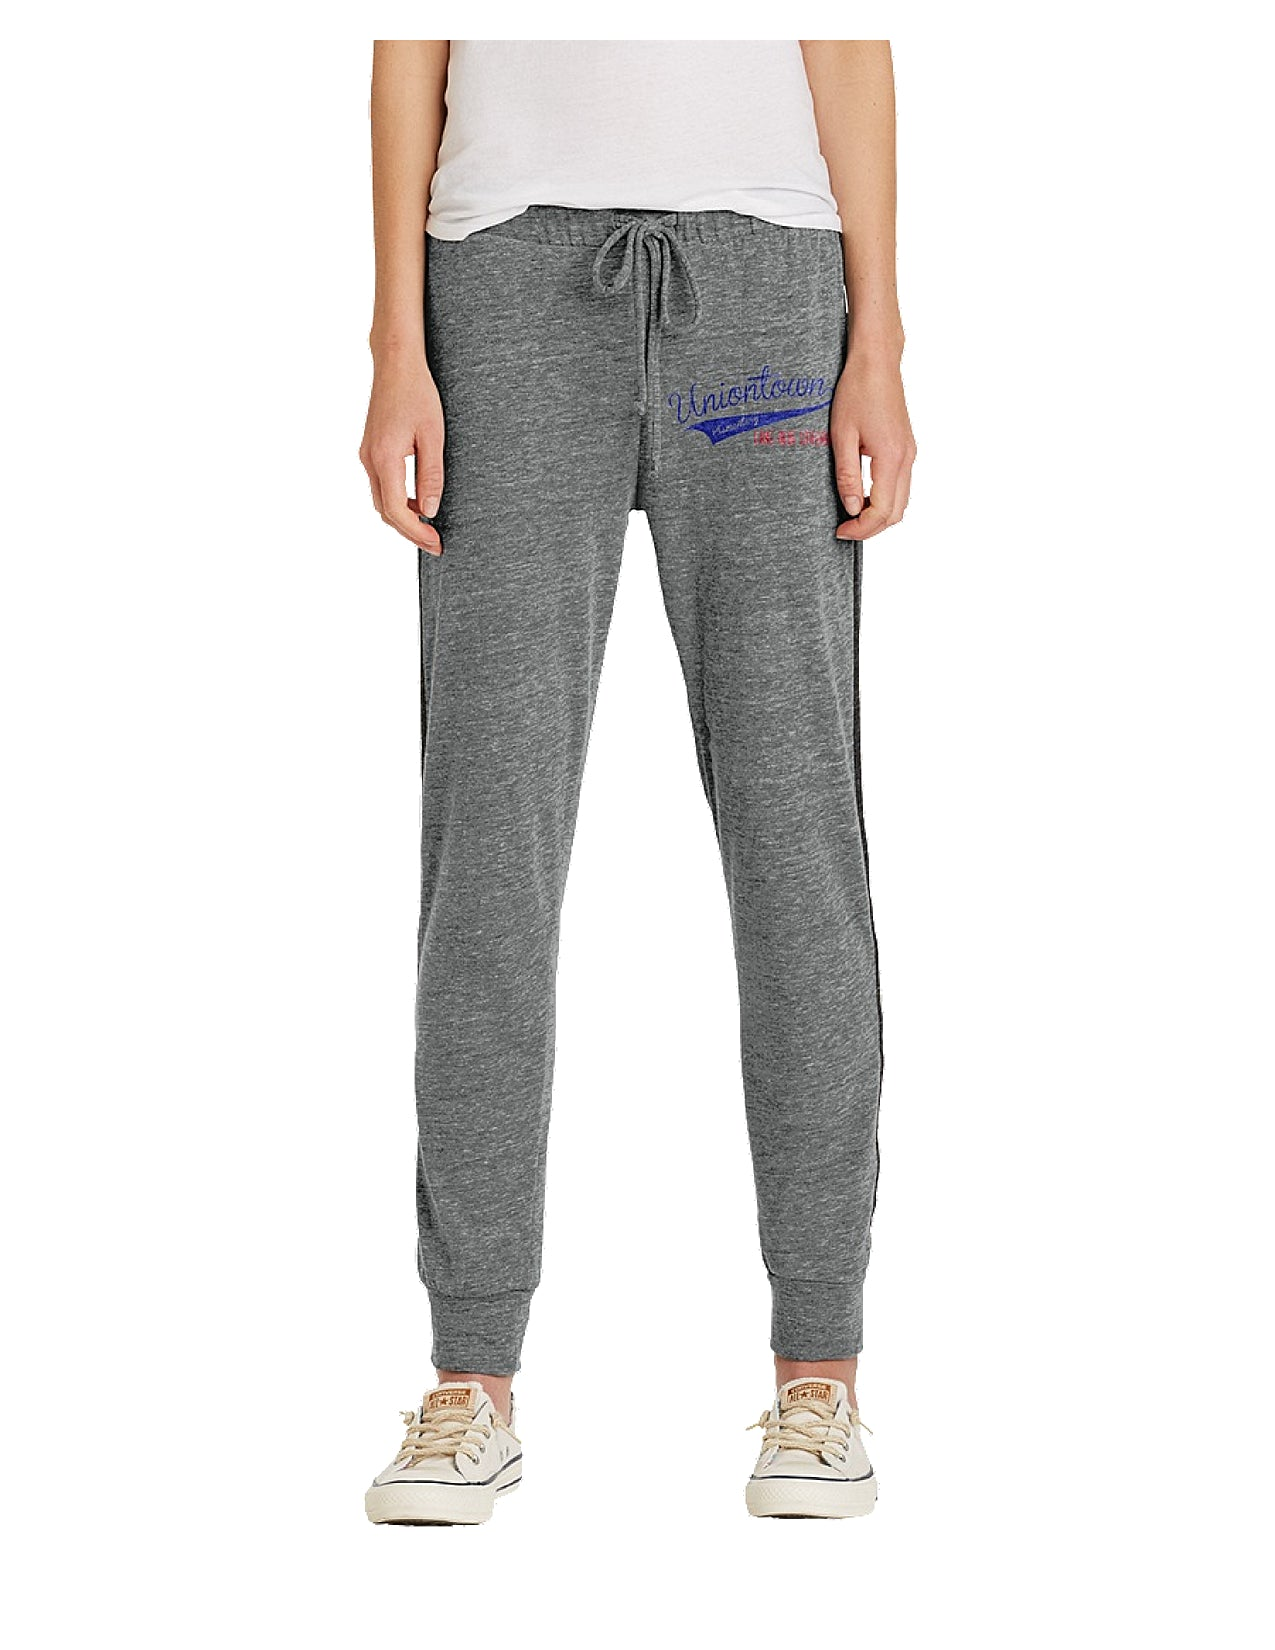 Jersey Jogger Pant - Uniontown Elementary